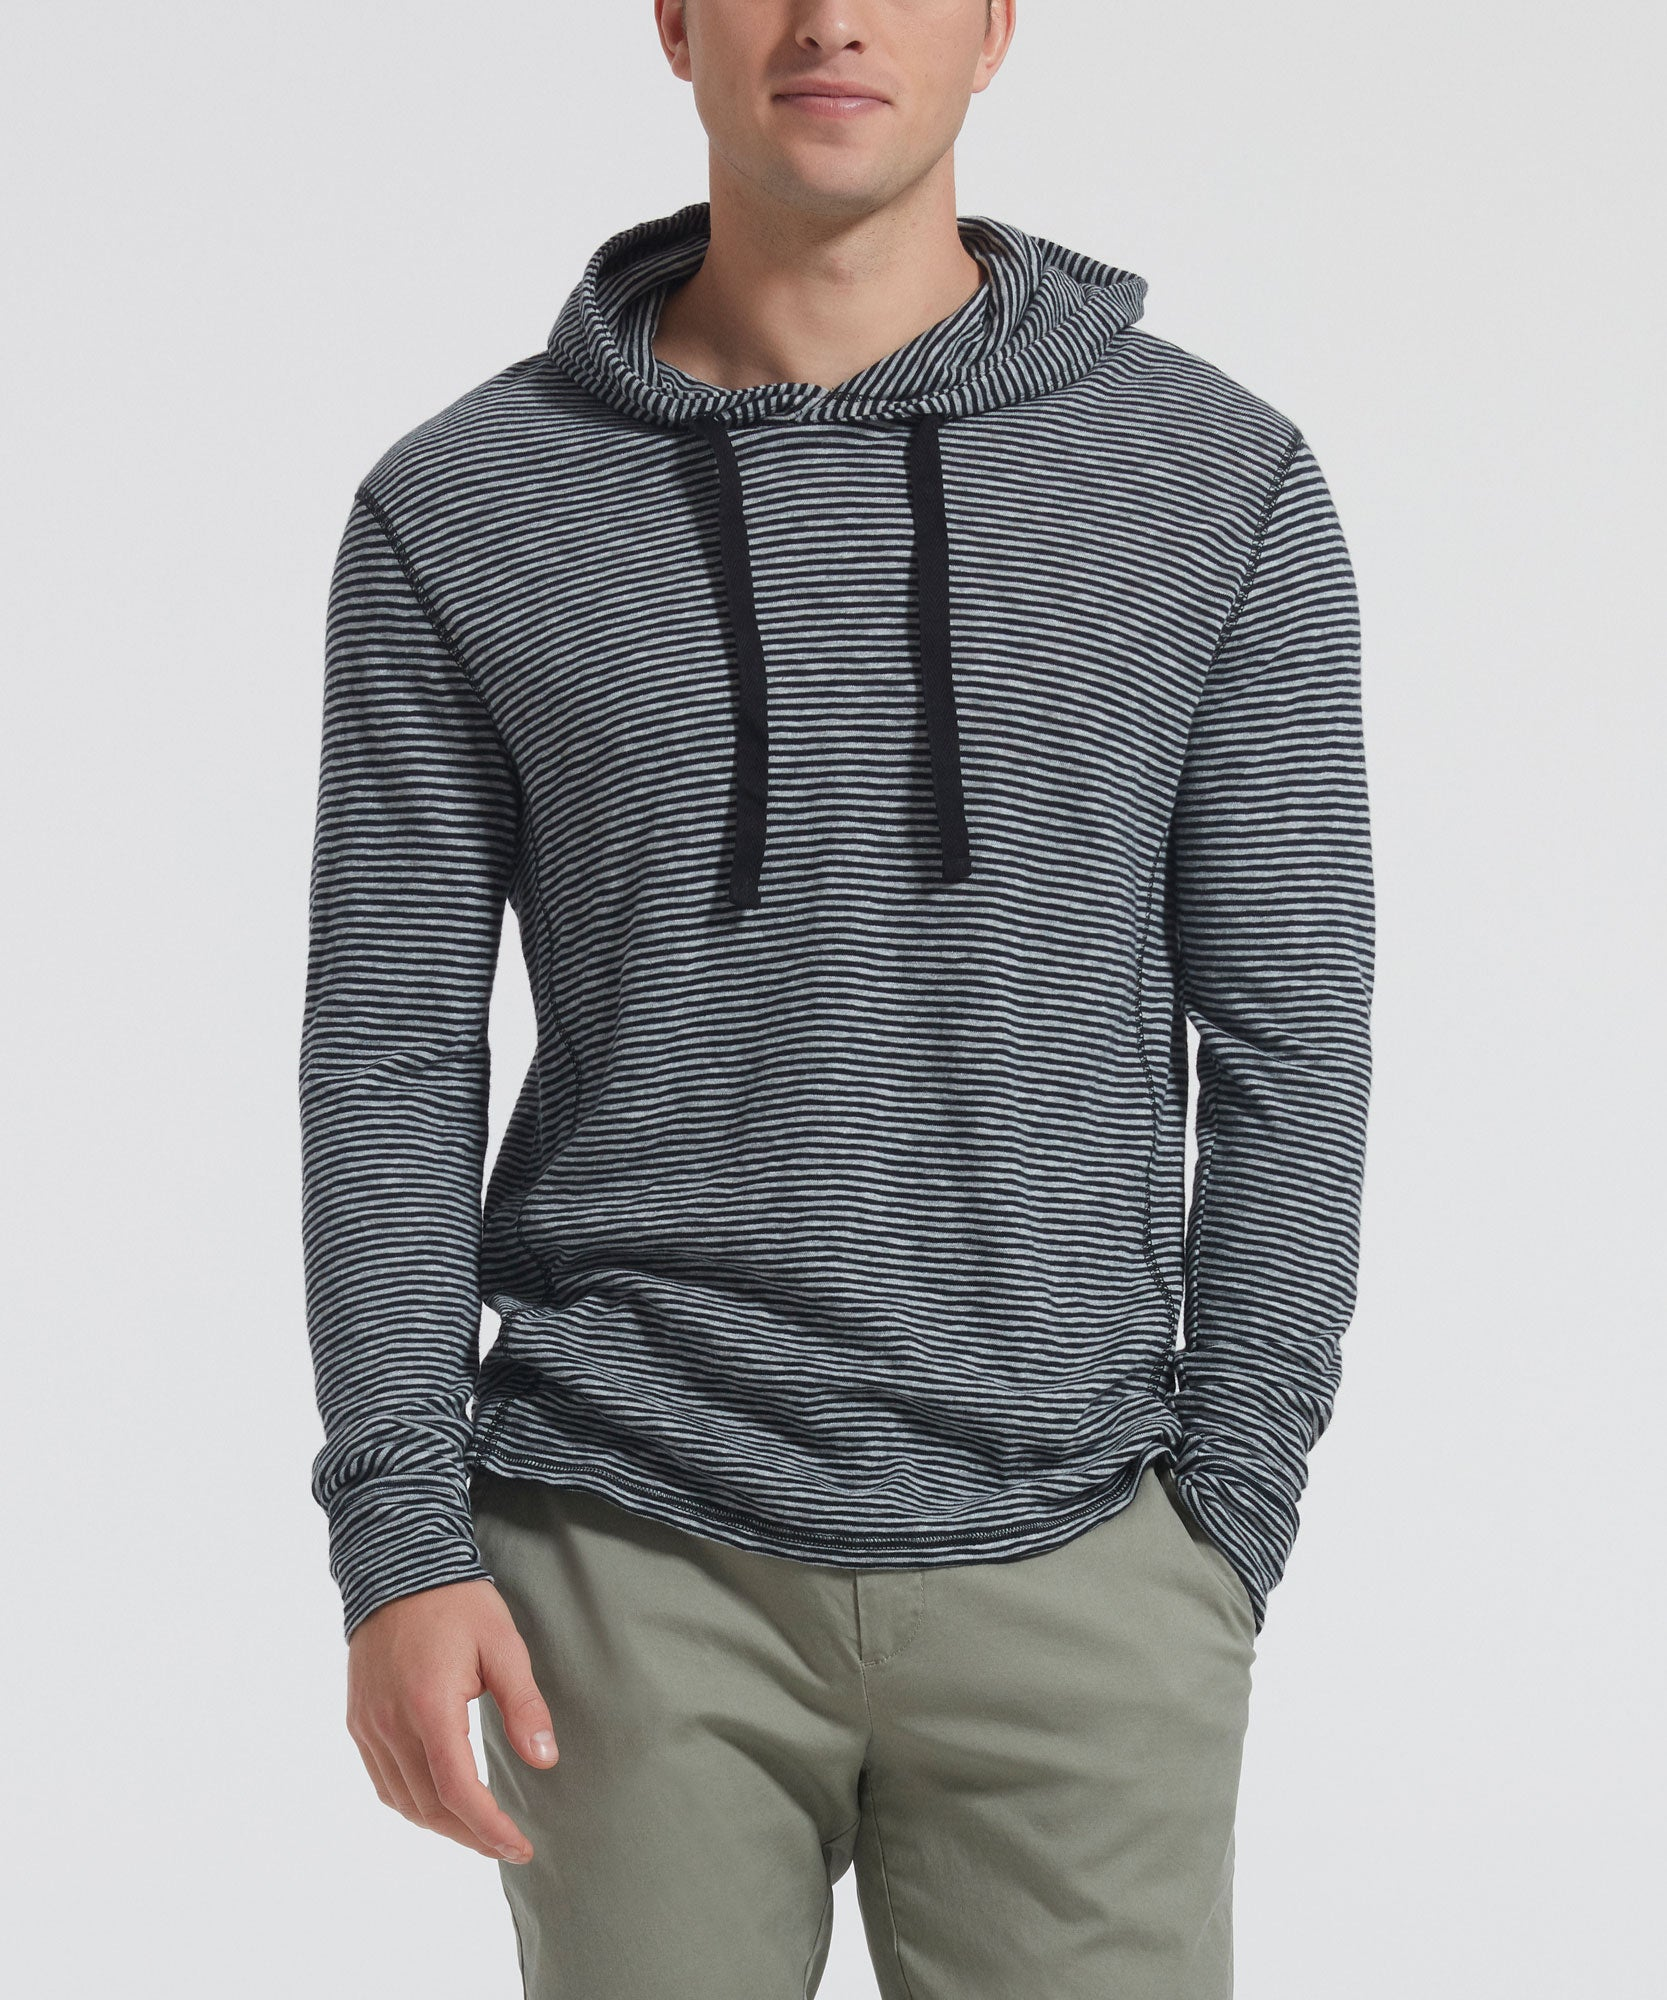 Striped Jersey Hooded Tee - Men's Luxe Loungewear by ATM Anthony Thomas Melillo